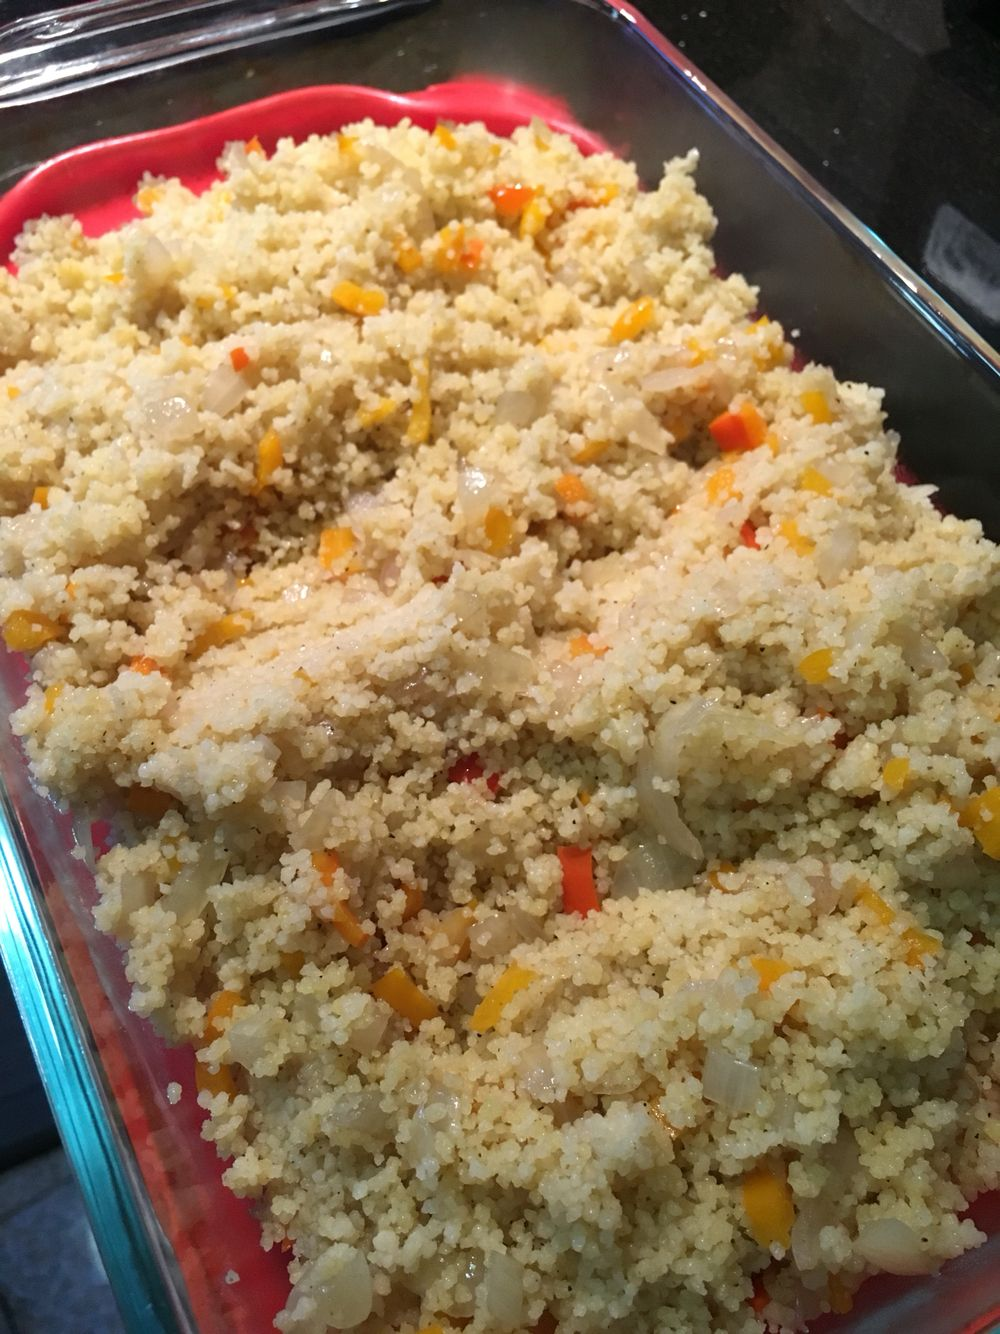 Moroccan couscous. There is no saffron or raisins added to this morracan dish